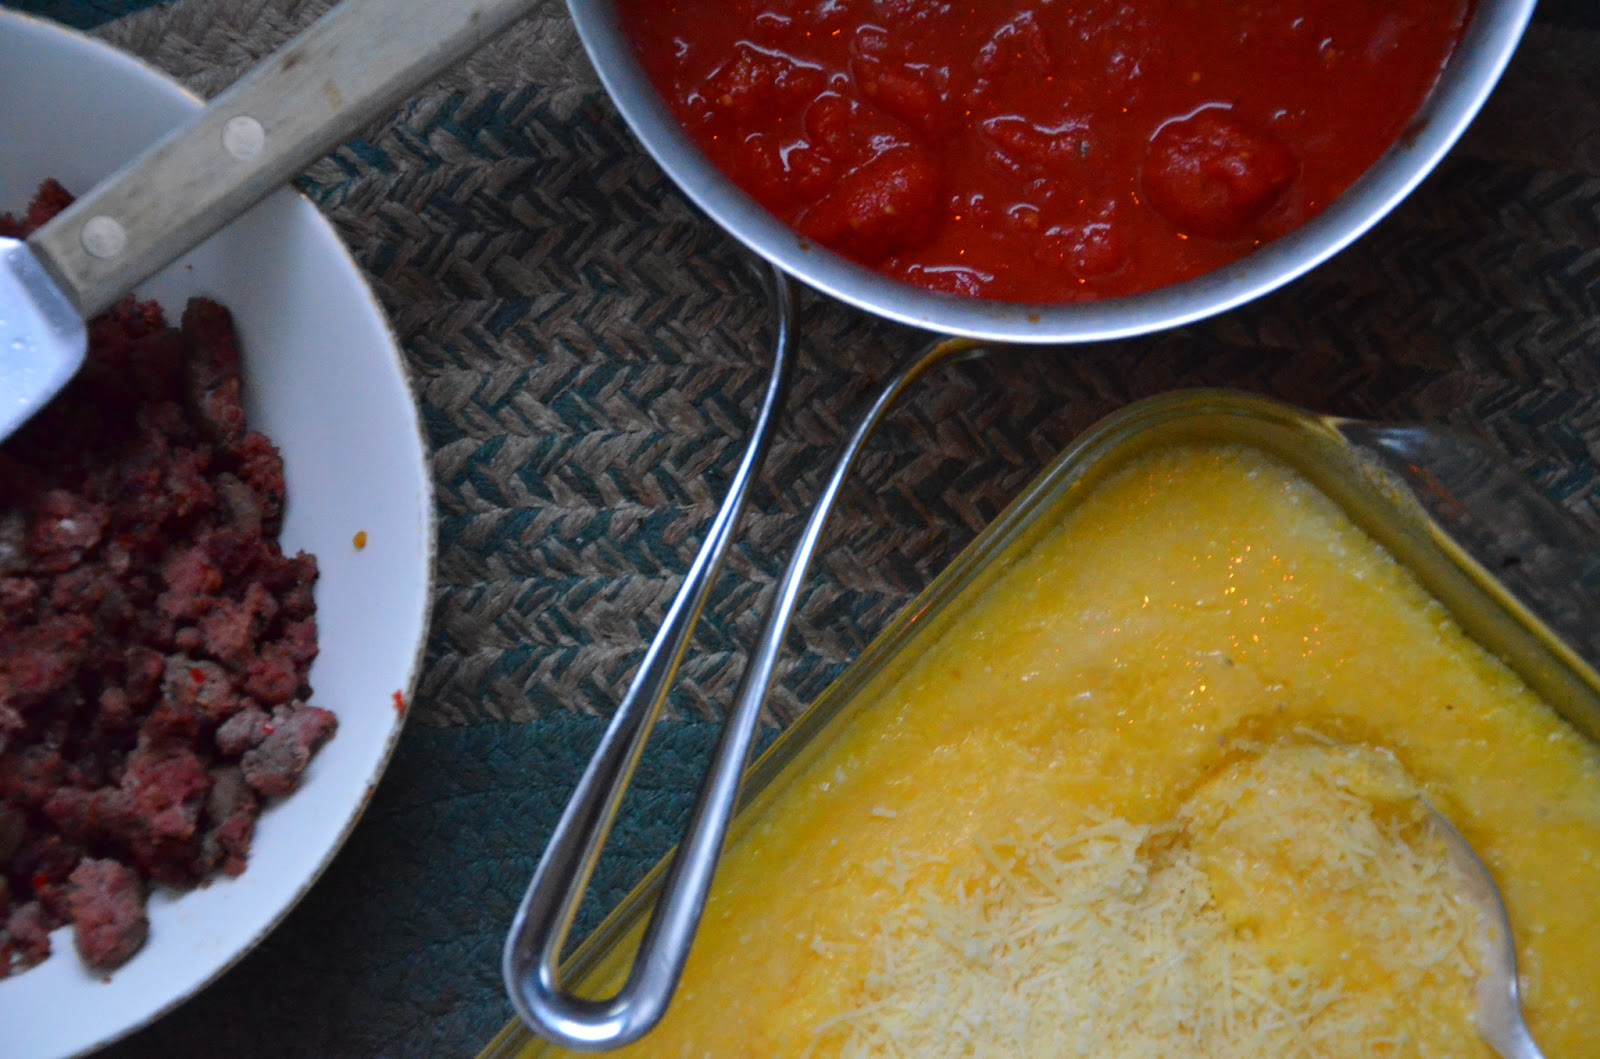 Kirsten's Cooking: Baked Polenta with Tomato Sauce